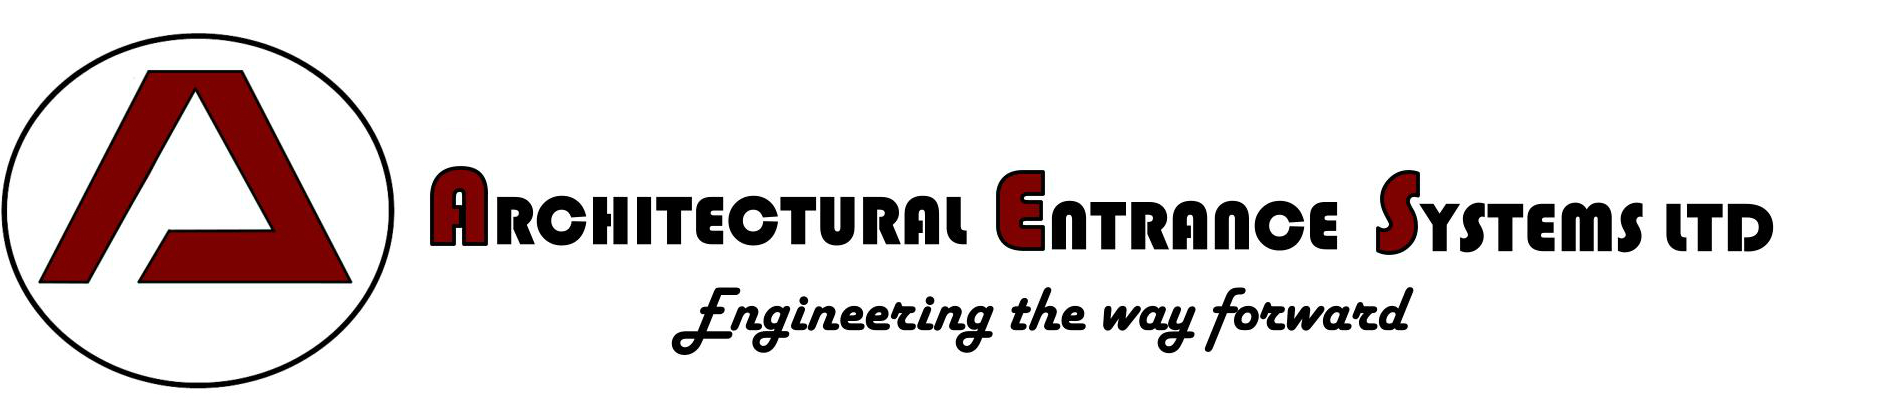 System Architecture Architectural Entrance Systems